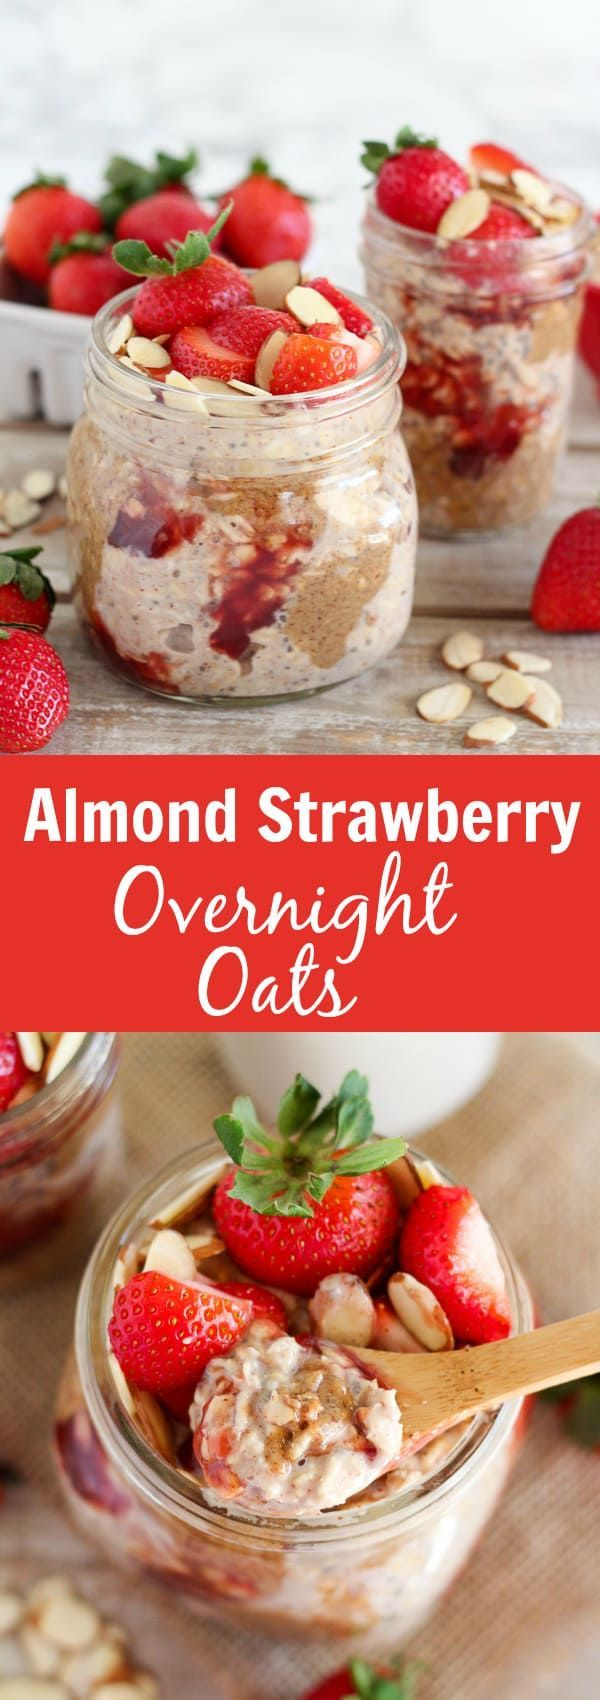 Strawberry Overnight Oats - A recipe for creamy overnight oats flavored with almonds and strawberries. This healthy make-ahead breakfast is great for busy mornings.